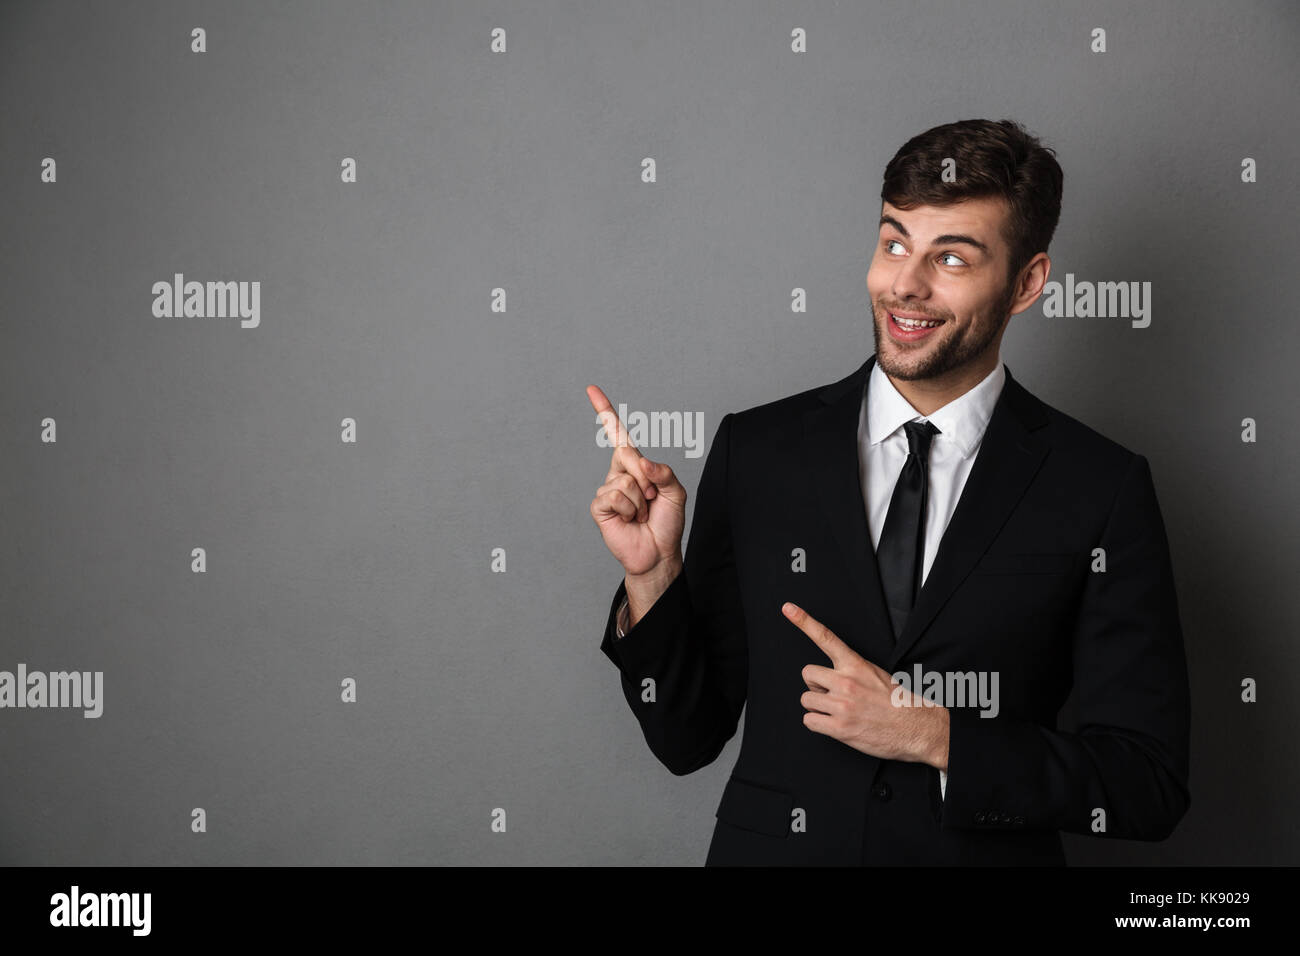 Close-up photo of handsome bearded man in black suit poiting with rwo fingers, looking aside, isolated on gray background - Stock Image